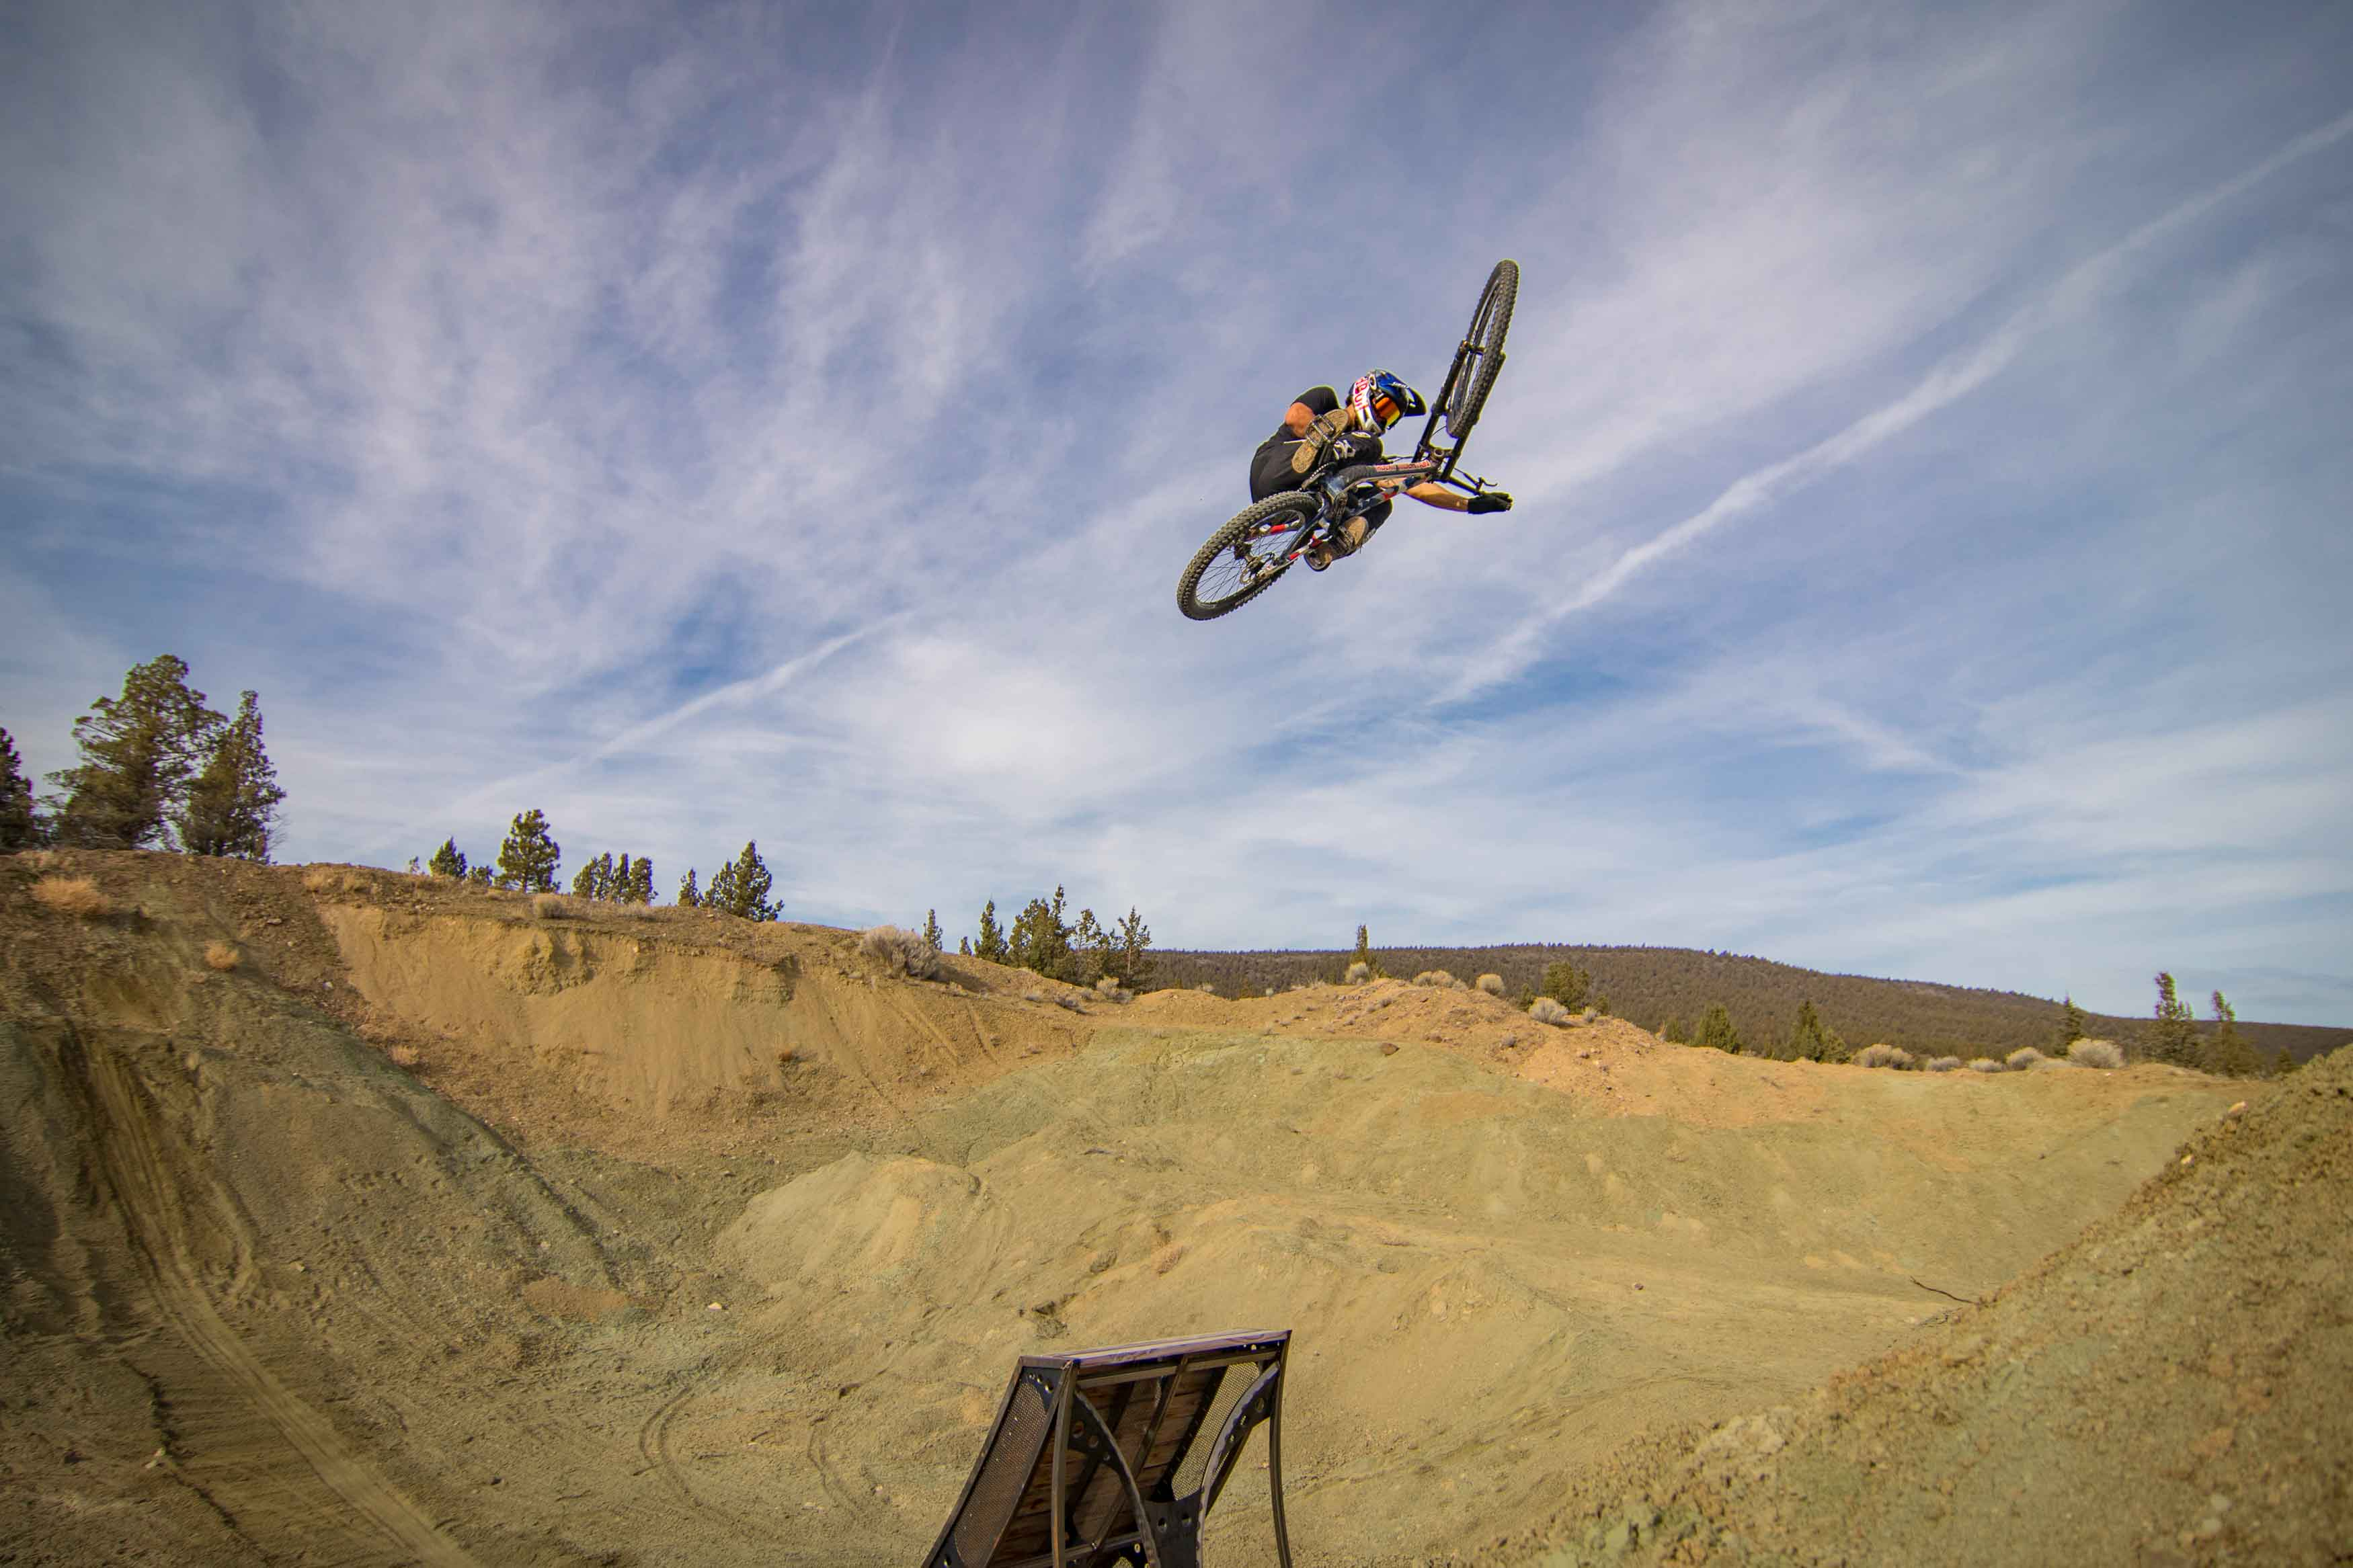 Carson Storch out at Black Sage